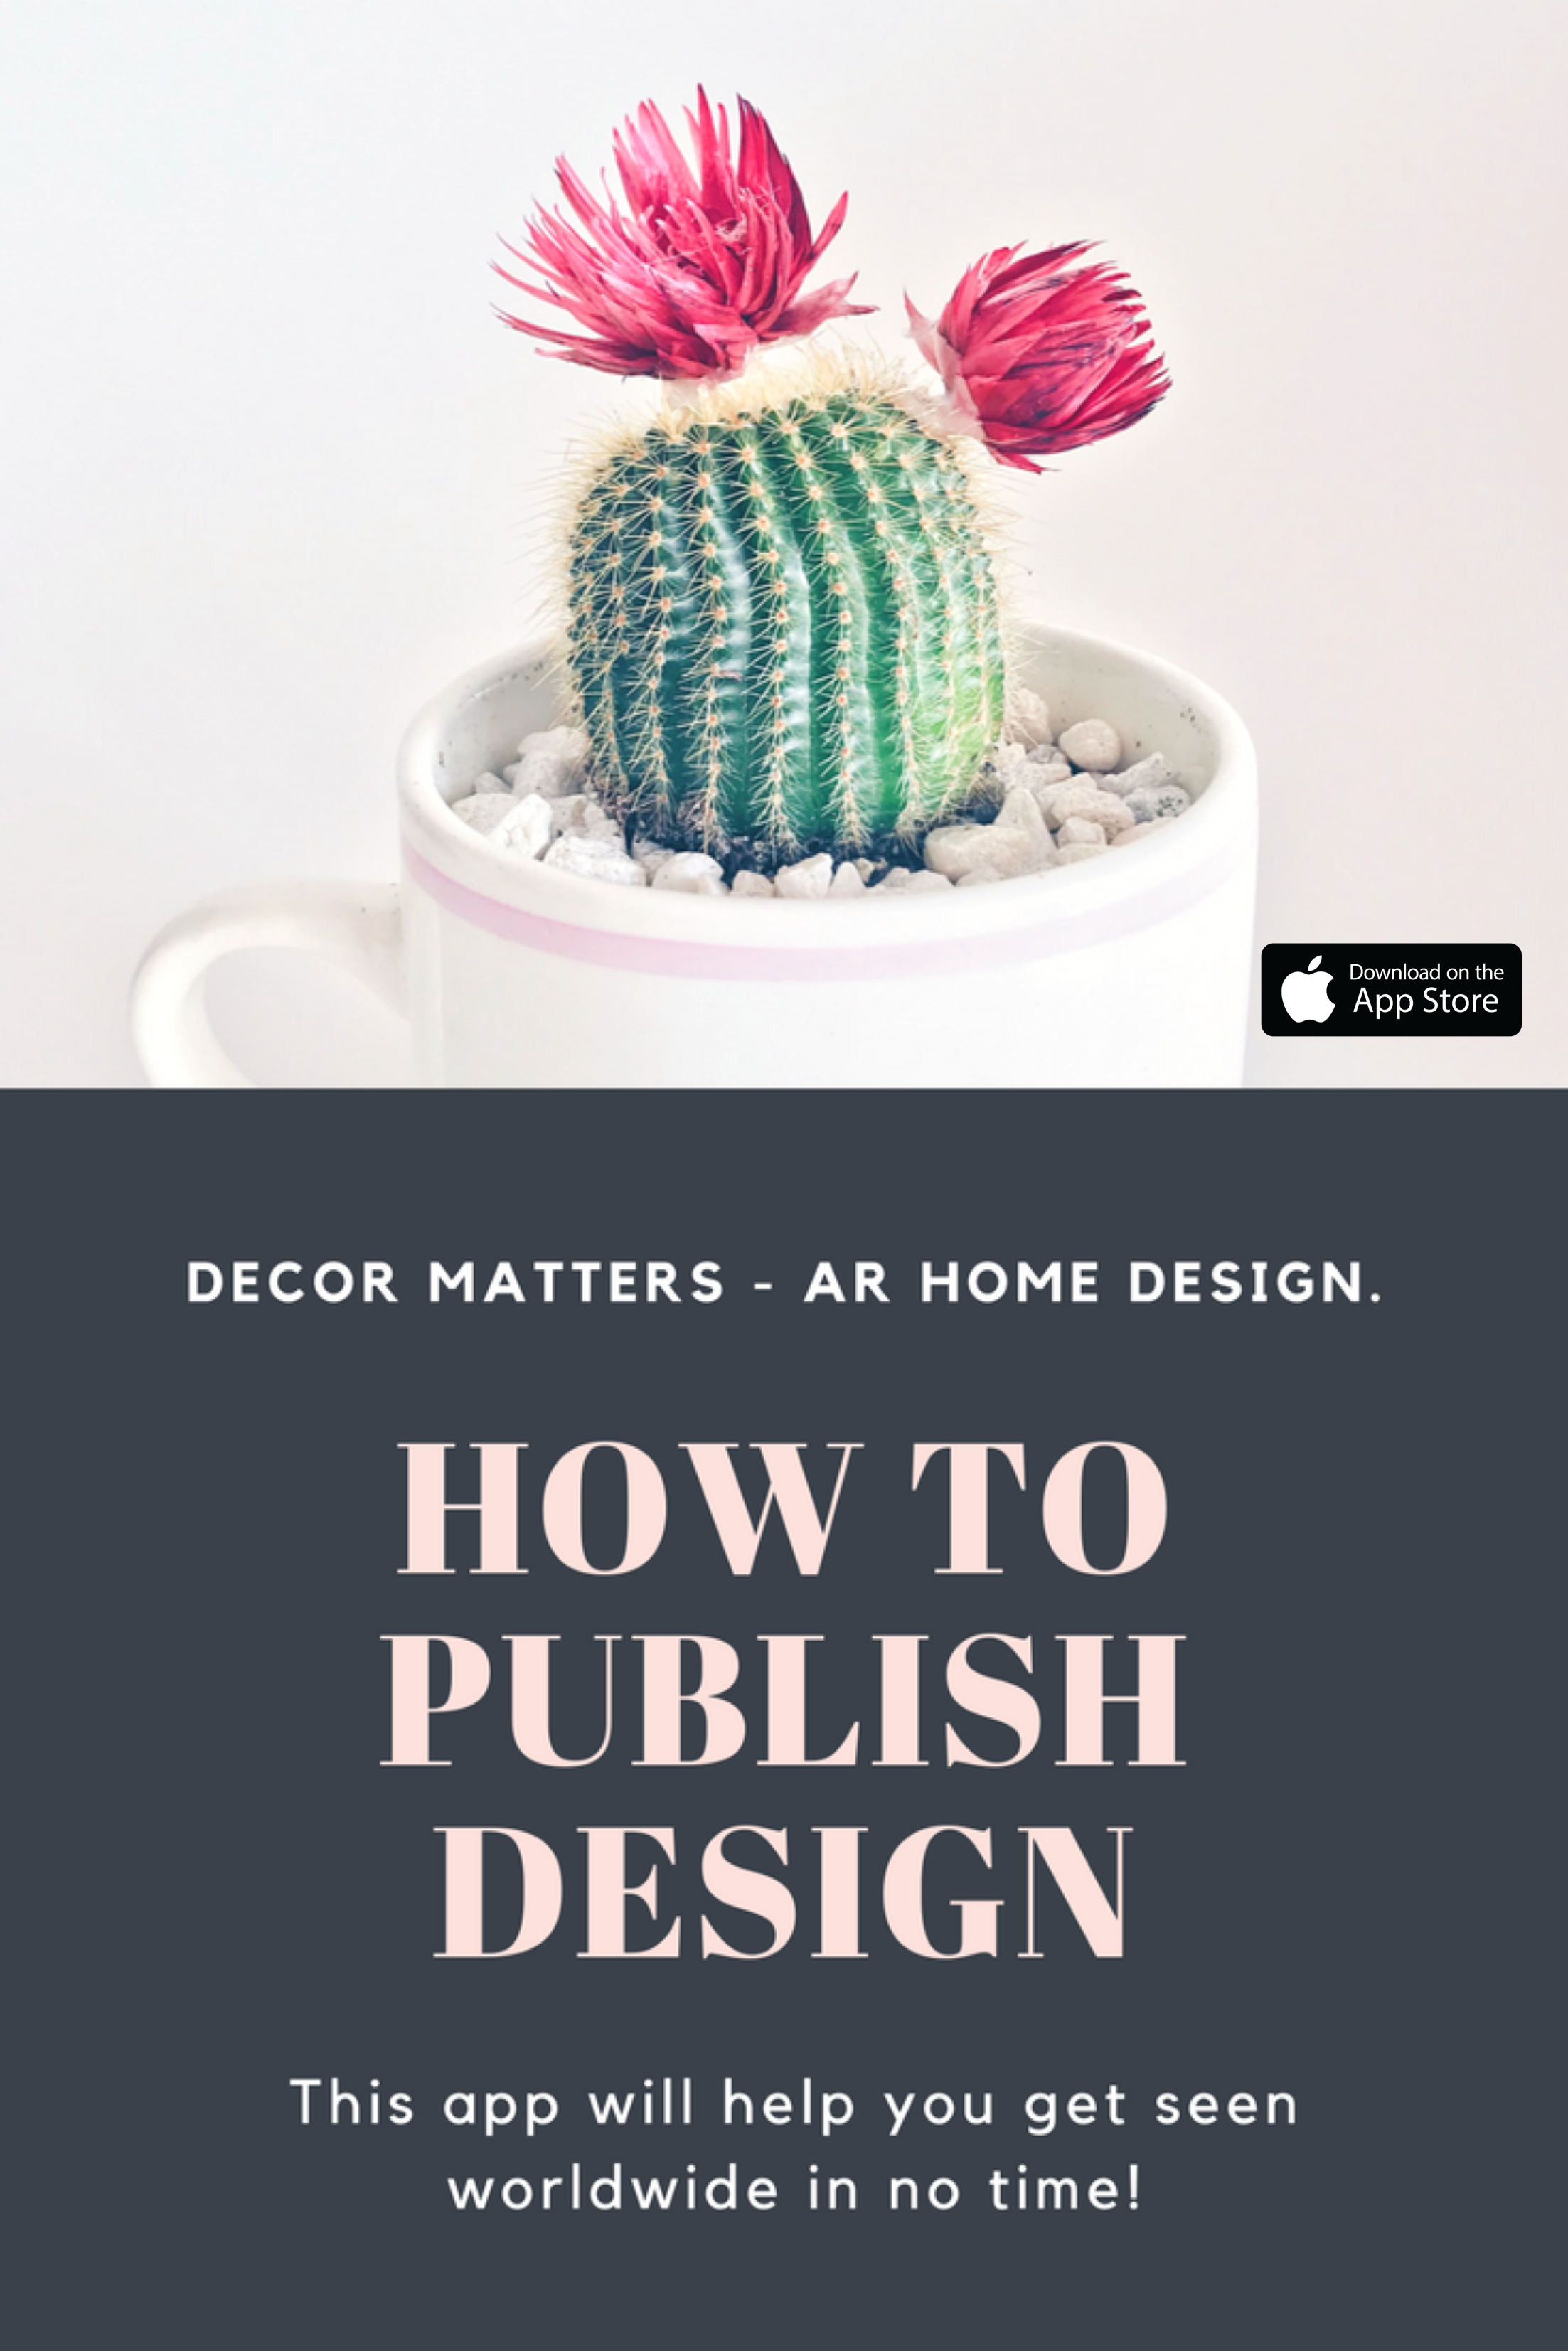 Do You Know How And Where To Publish Your Interior Design